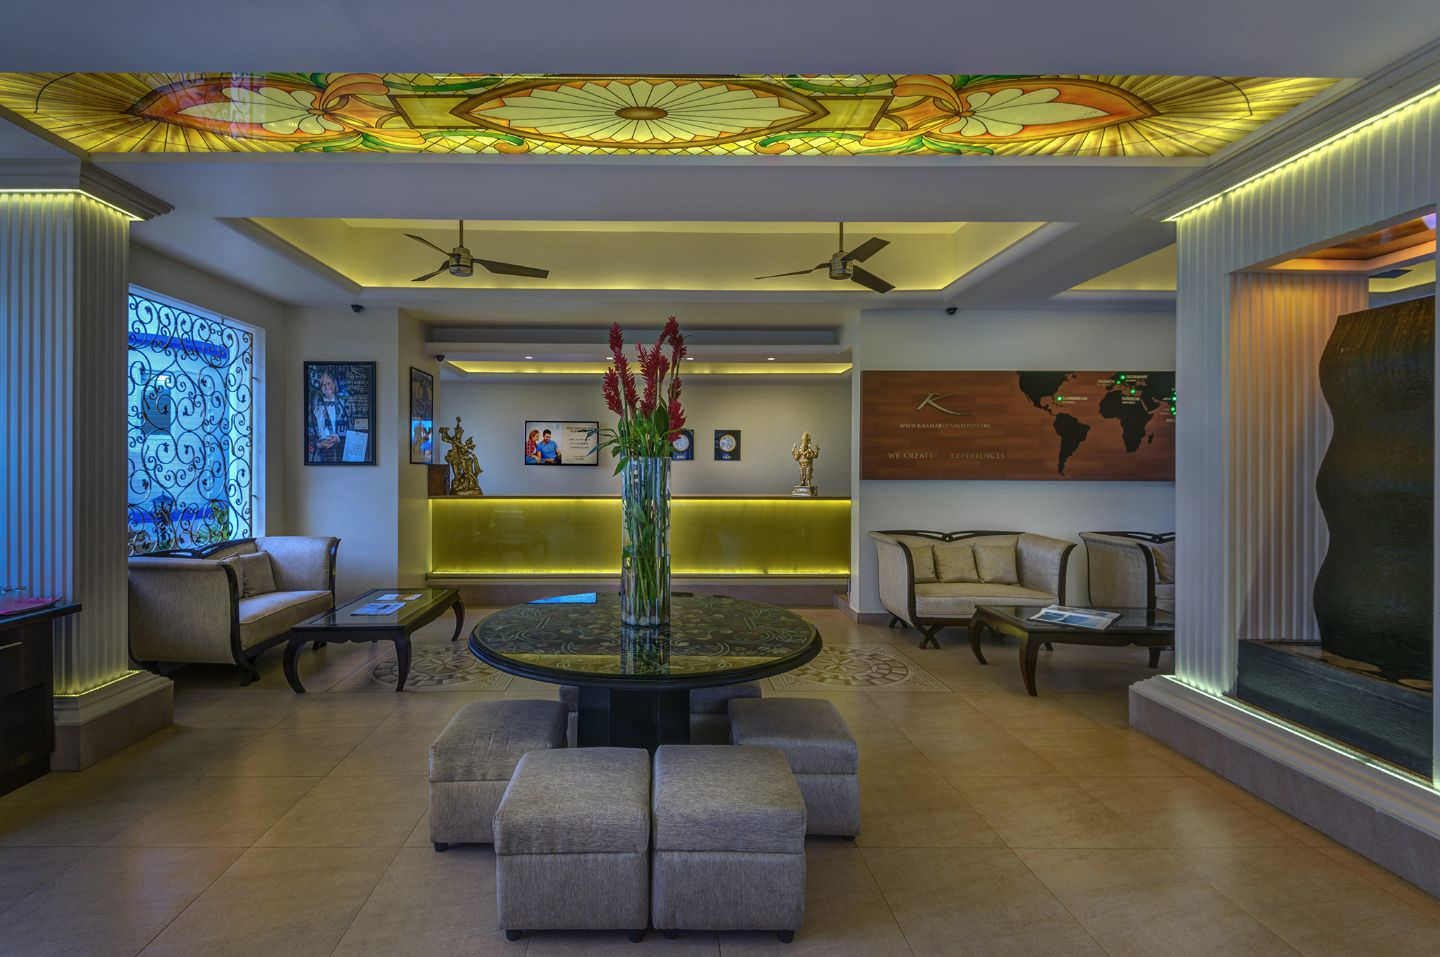 luxury hotel of Karma Royal Palms Reception Area